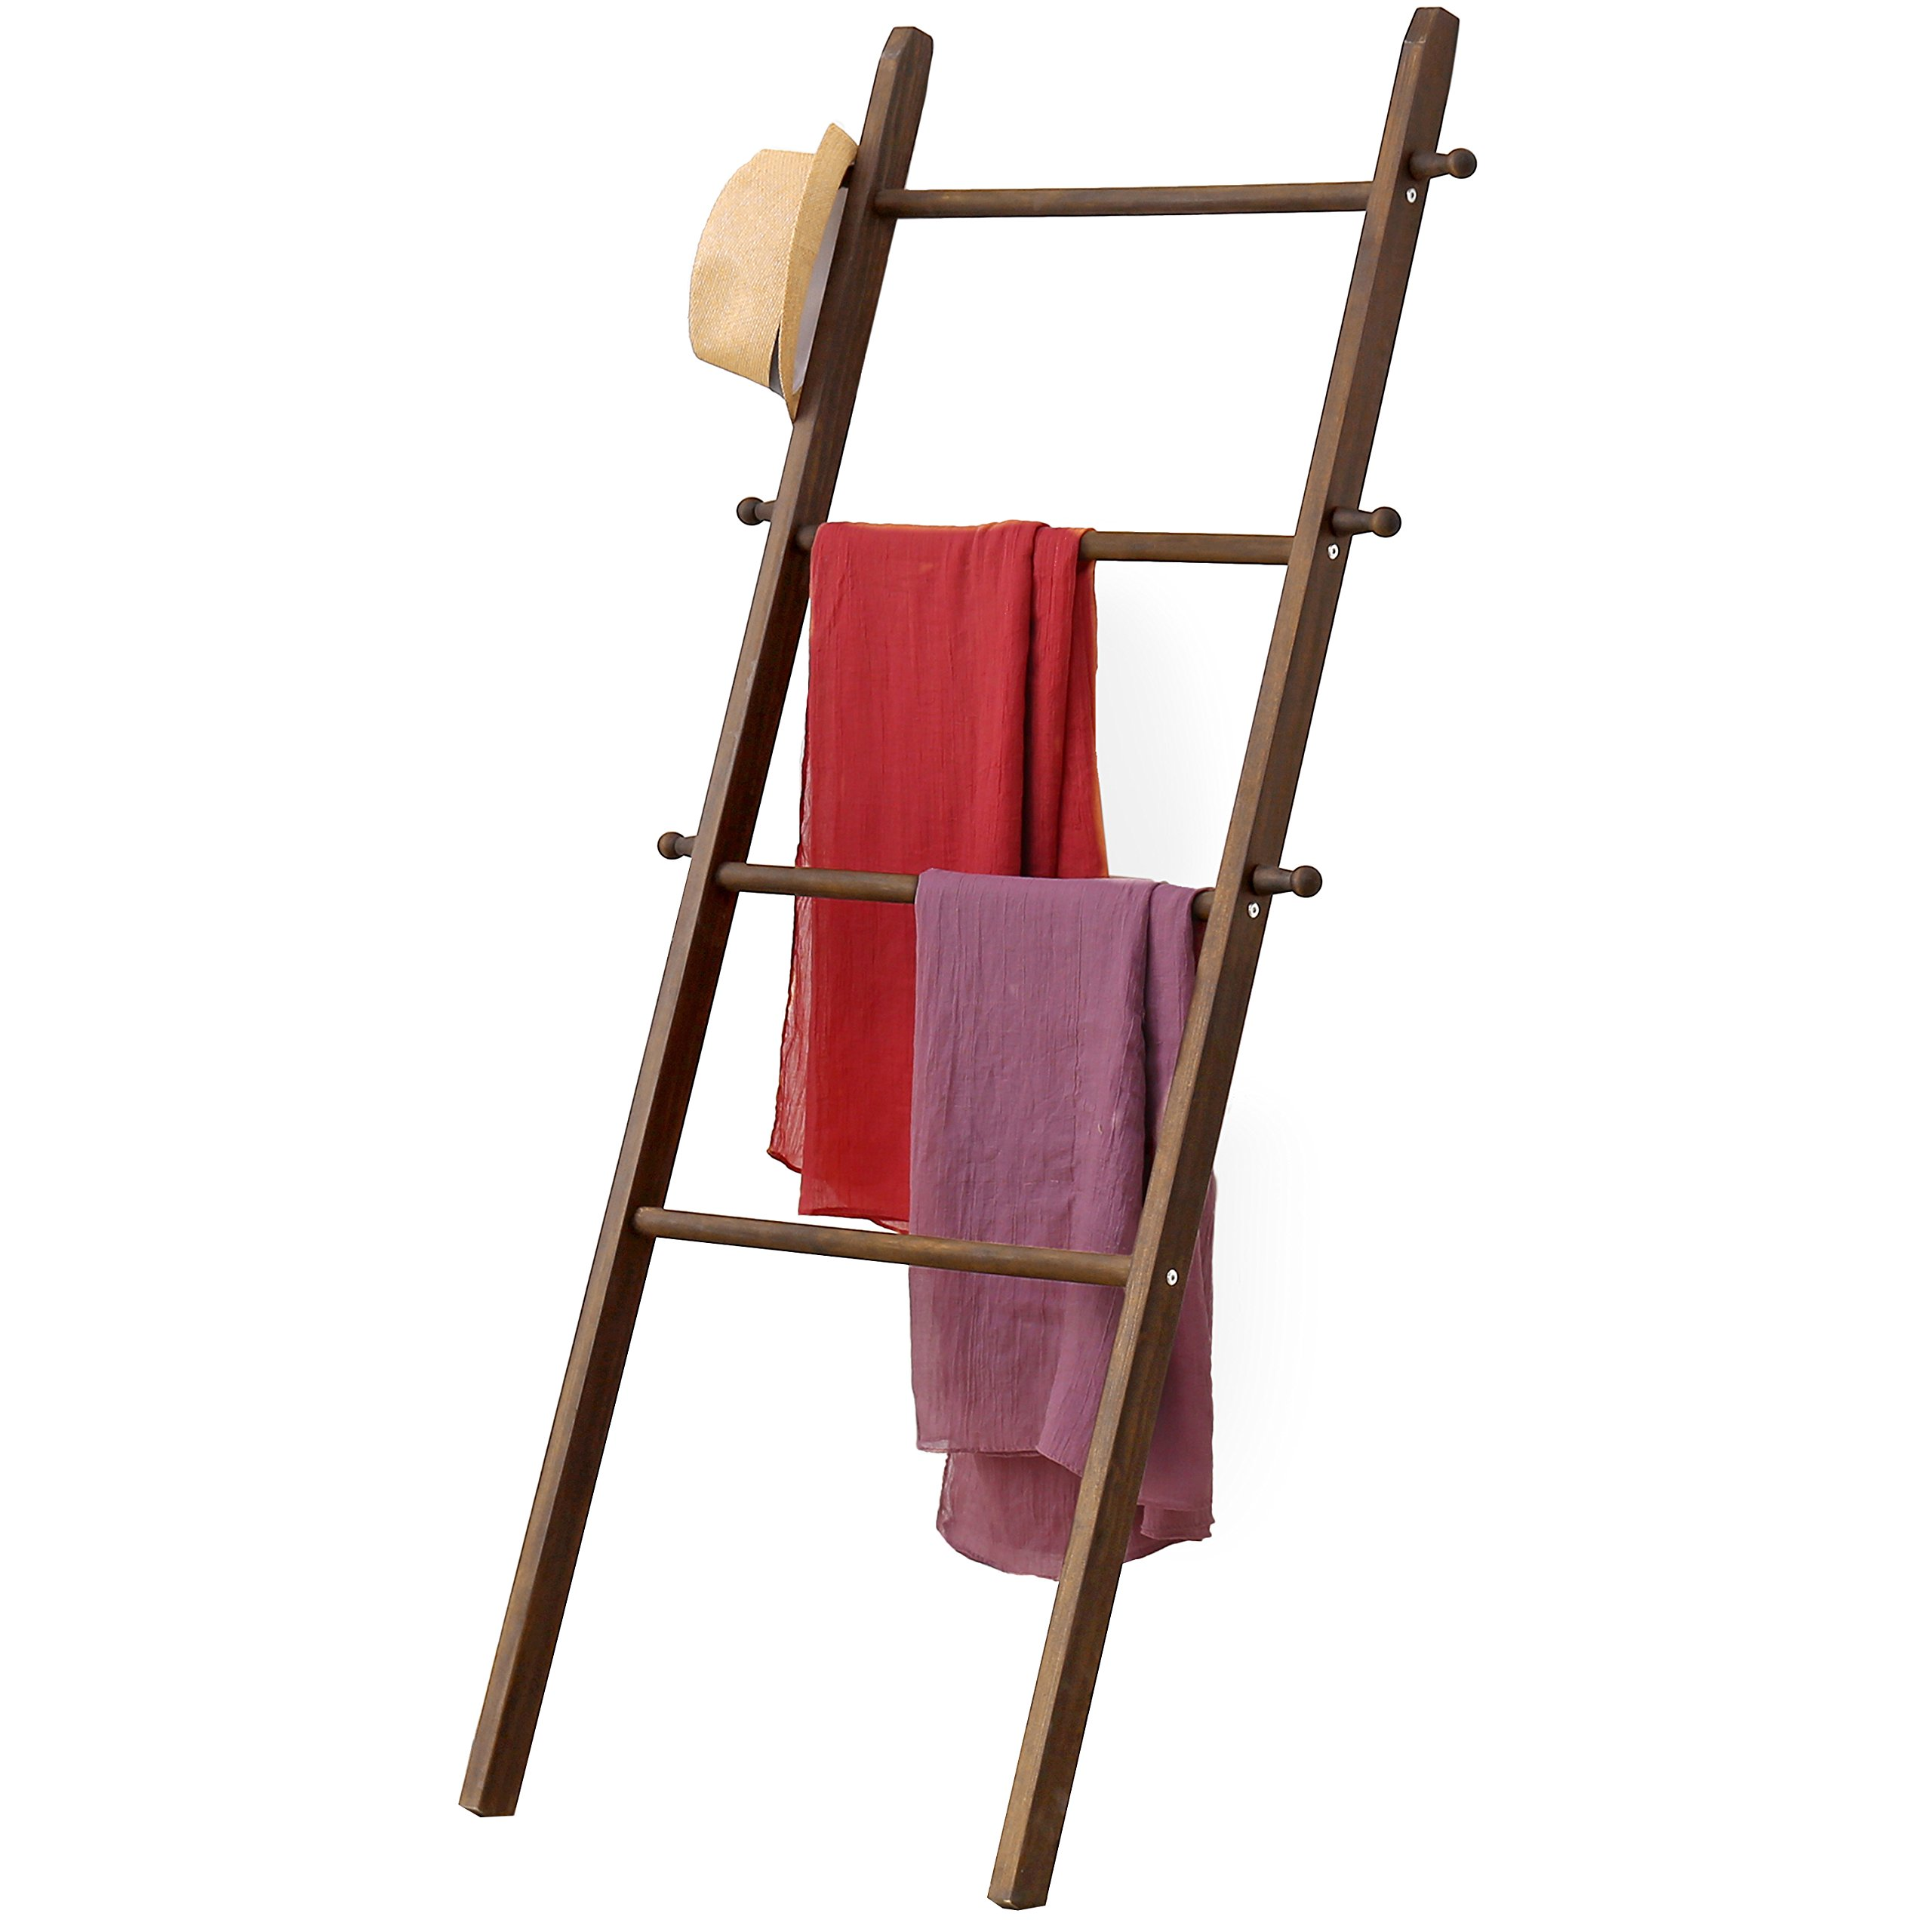 MyGift 5-Foot Wall-Leaning Wood Garment Ladder-Style Wall Rack by MyGift